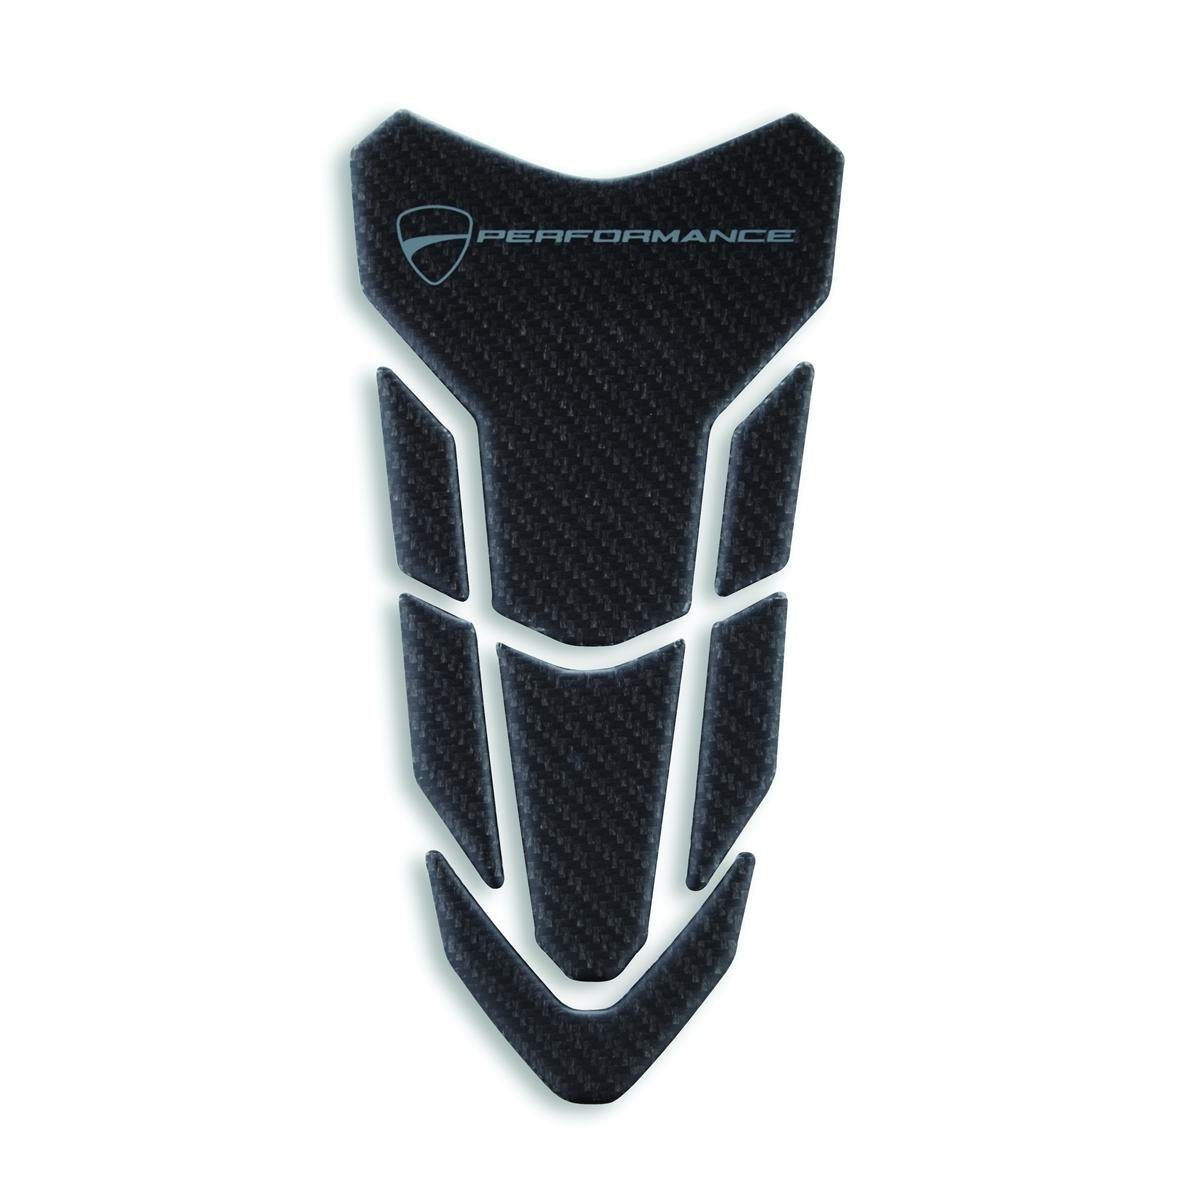 Ducati Panigale V4 Carbon Adhesive Tank Protector 97480161A